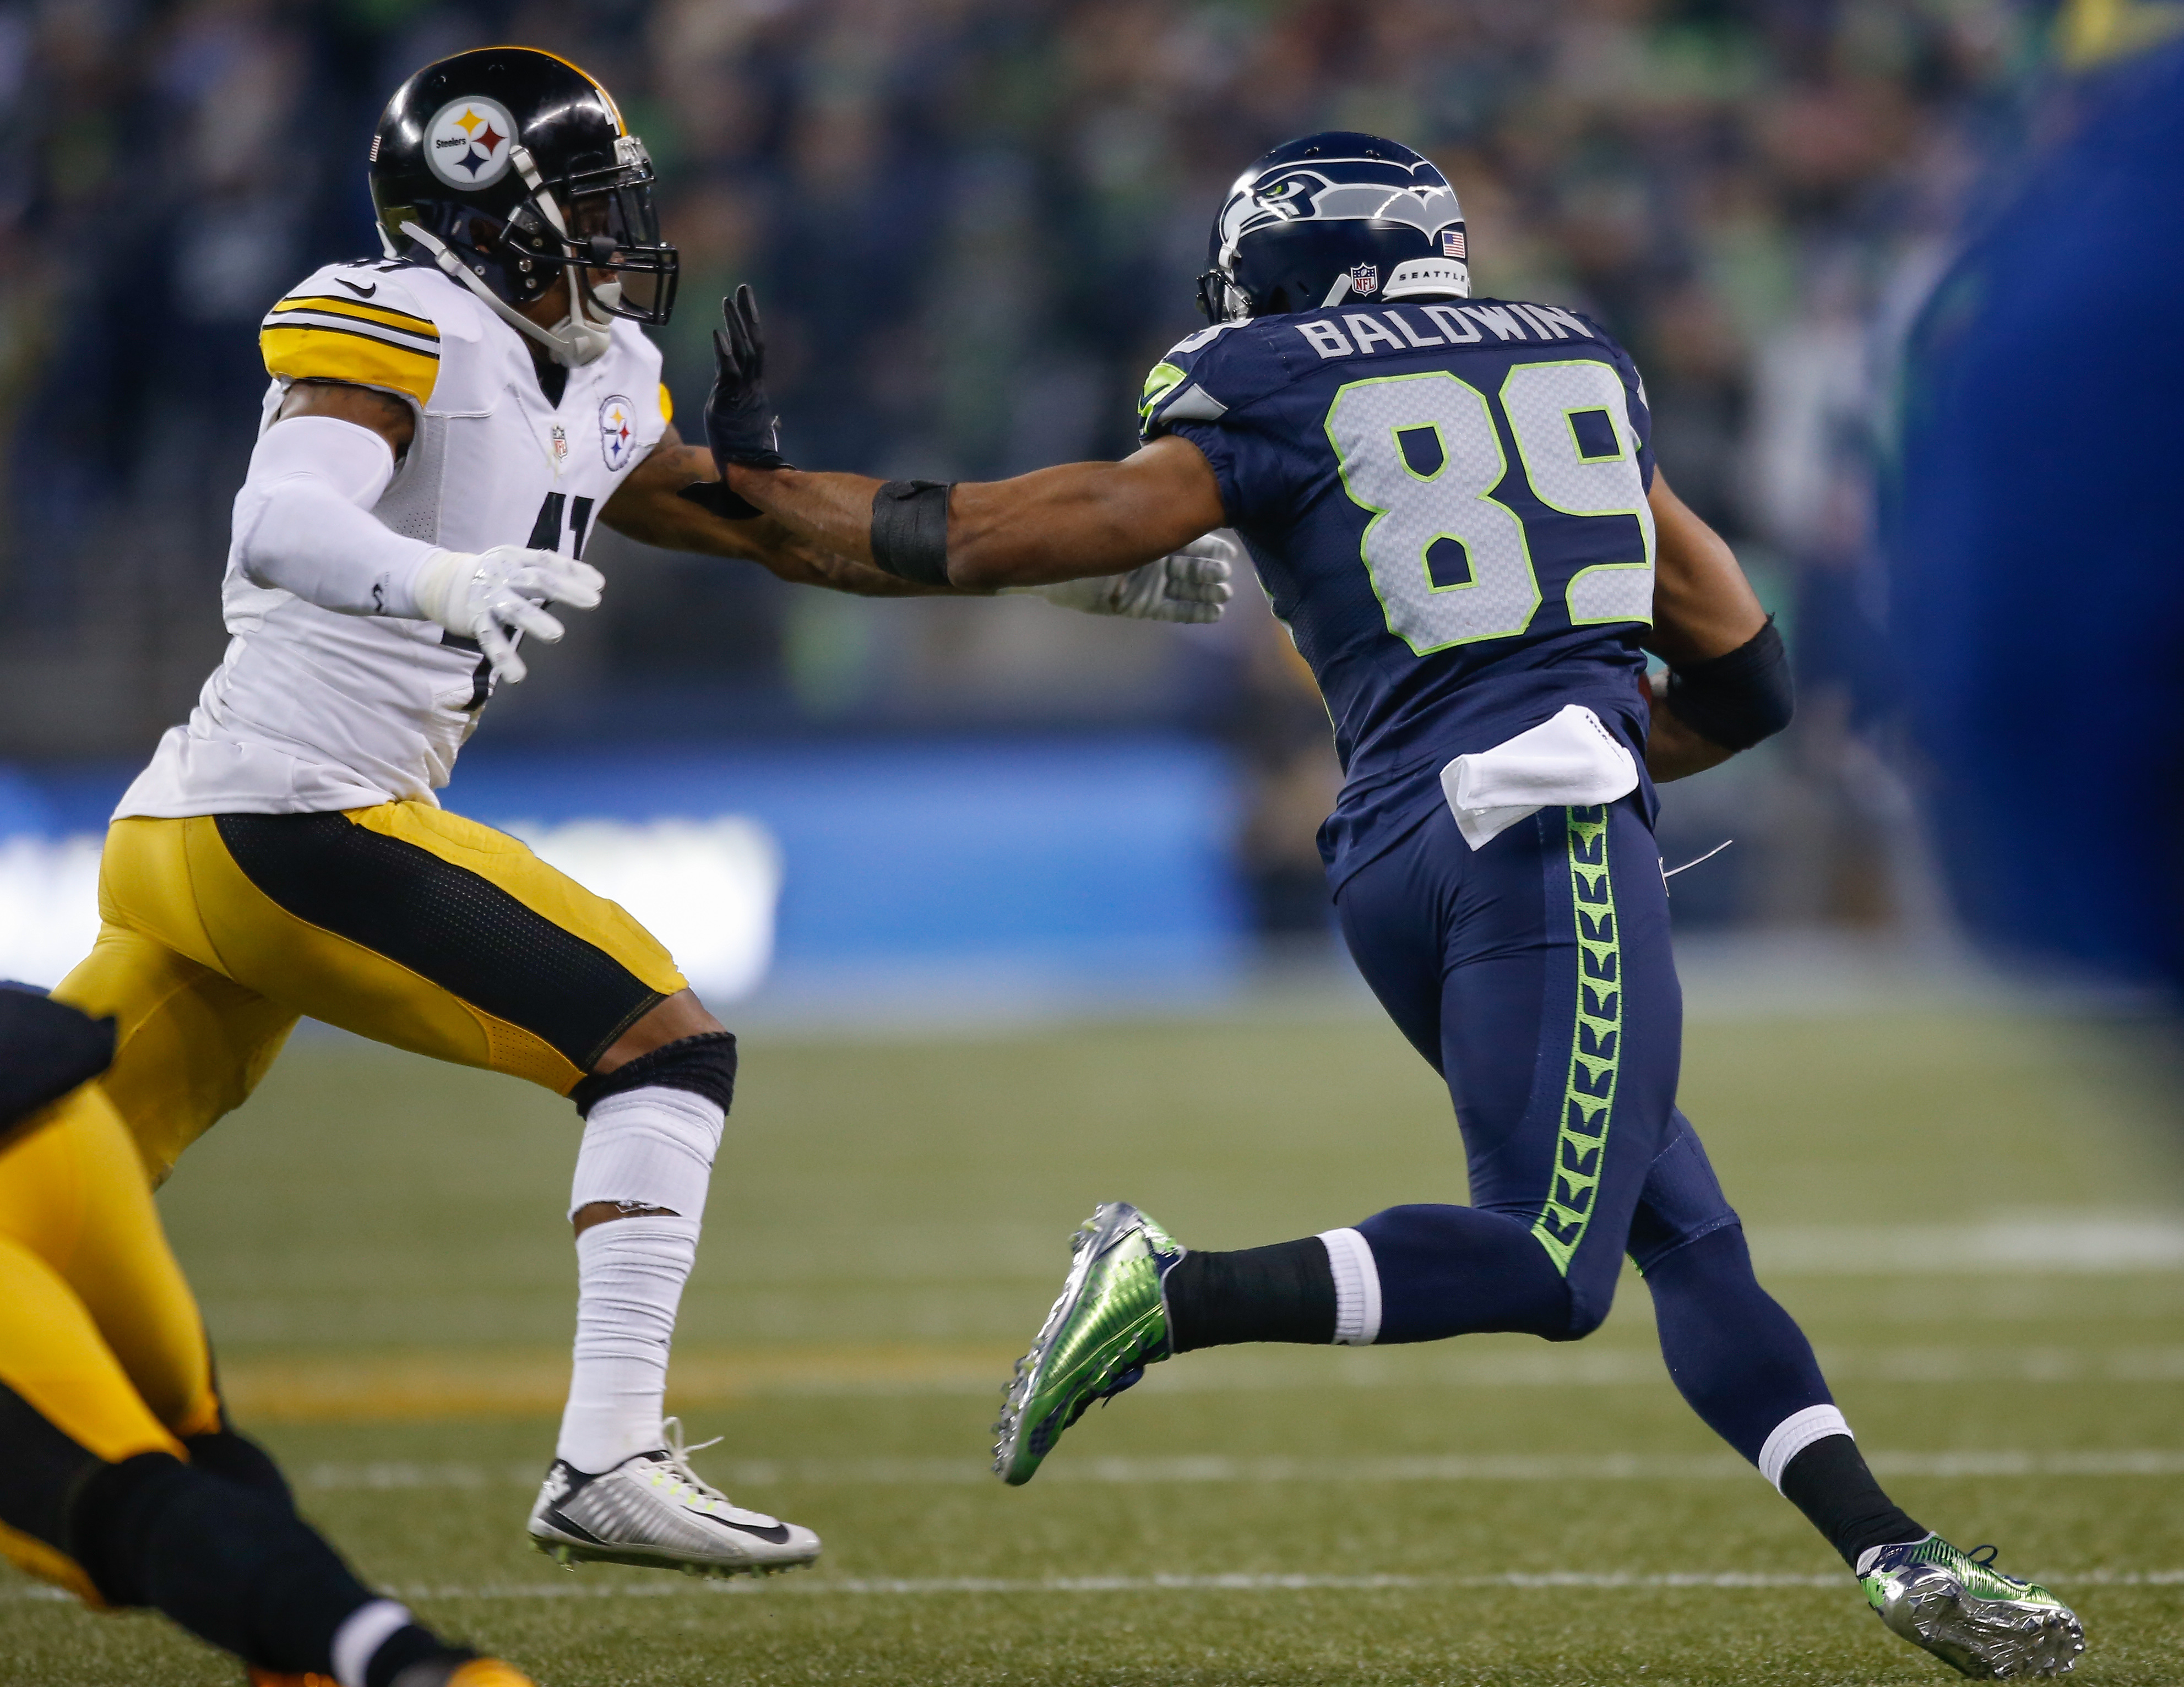 Wide receiver Doug Baldwin of the Seattle Seahawks scores a touchdown against the Pittsburgh Steelers at CenturyLink Field on Nov. 29, 2015 in Seattle. (credit: Otto Greule Jr/Getty Images)